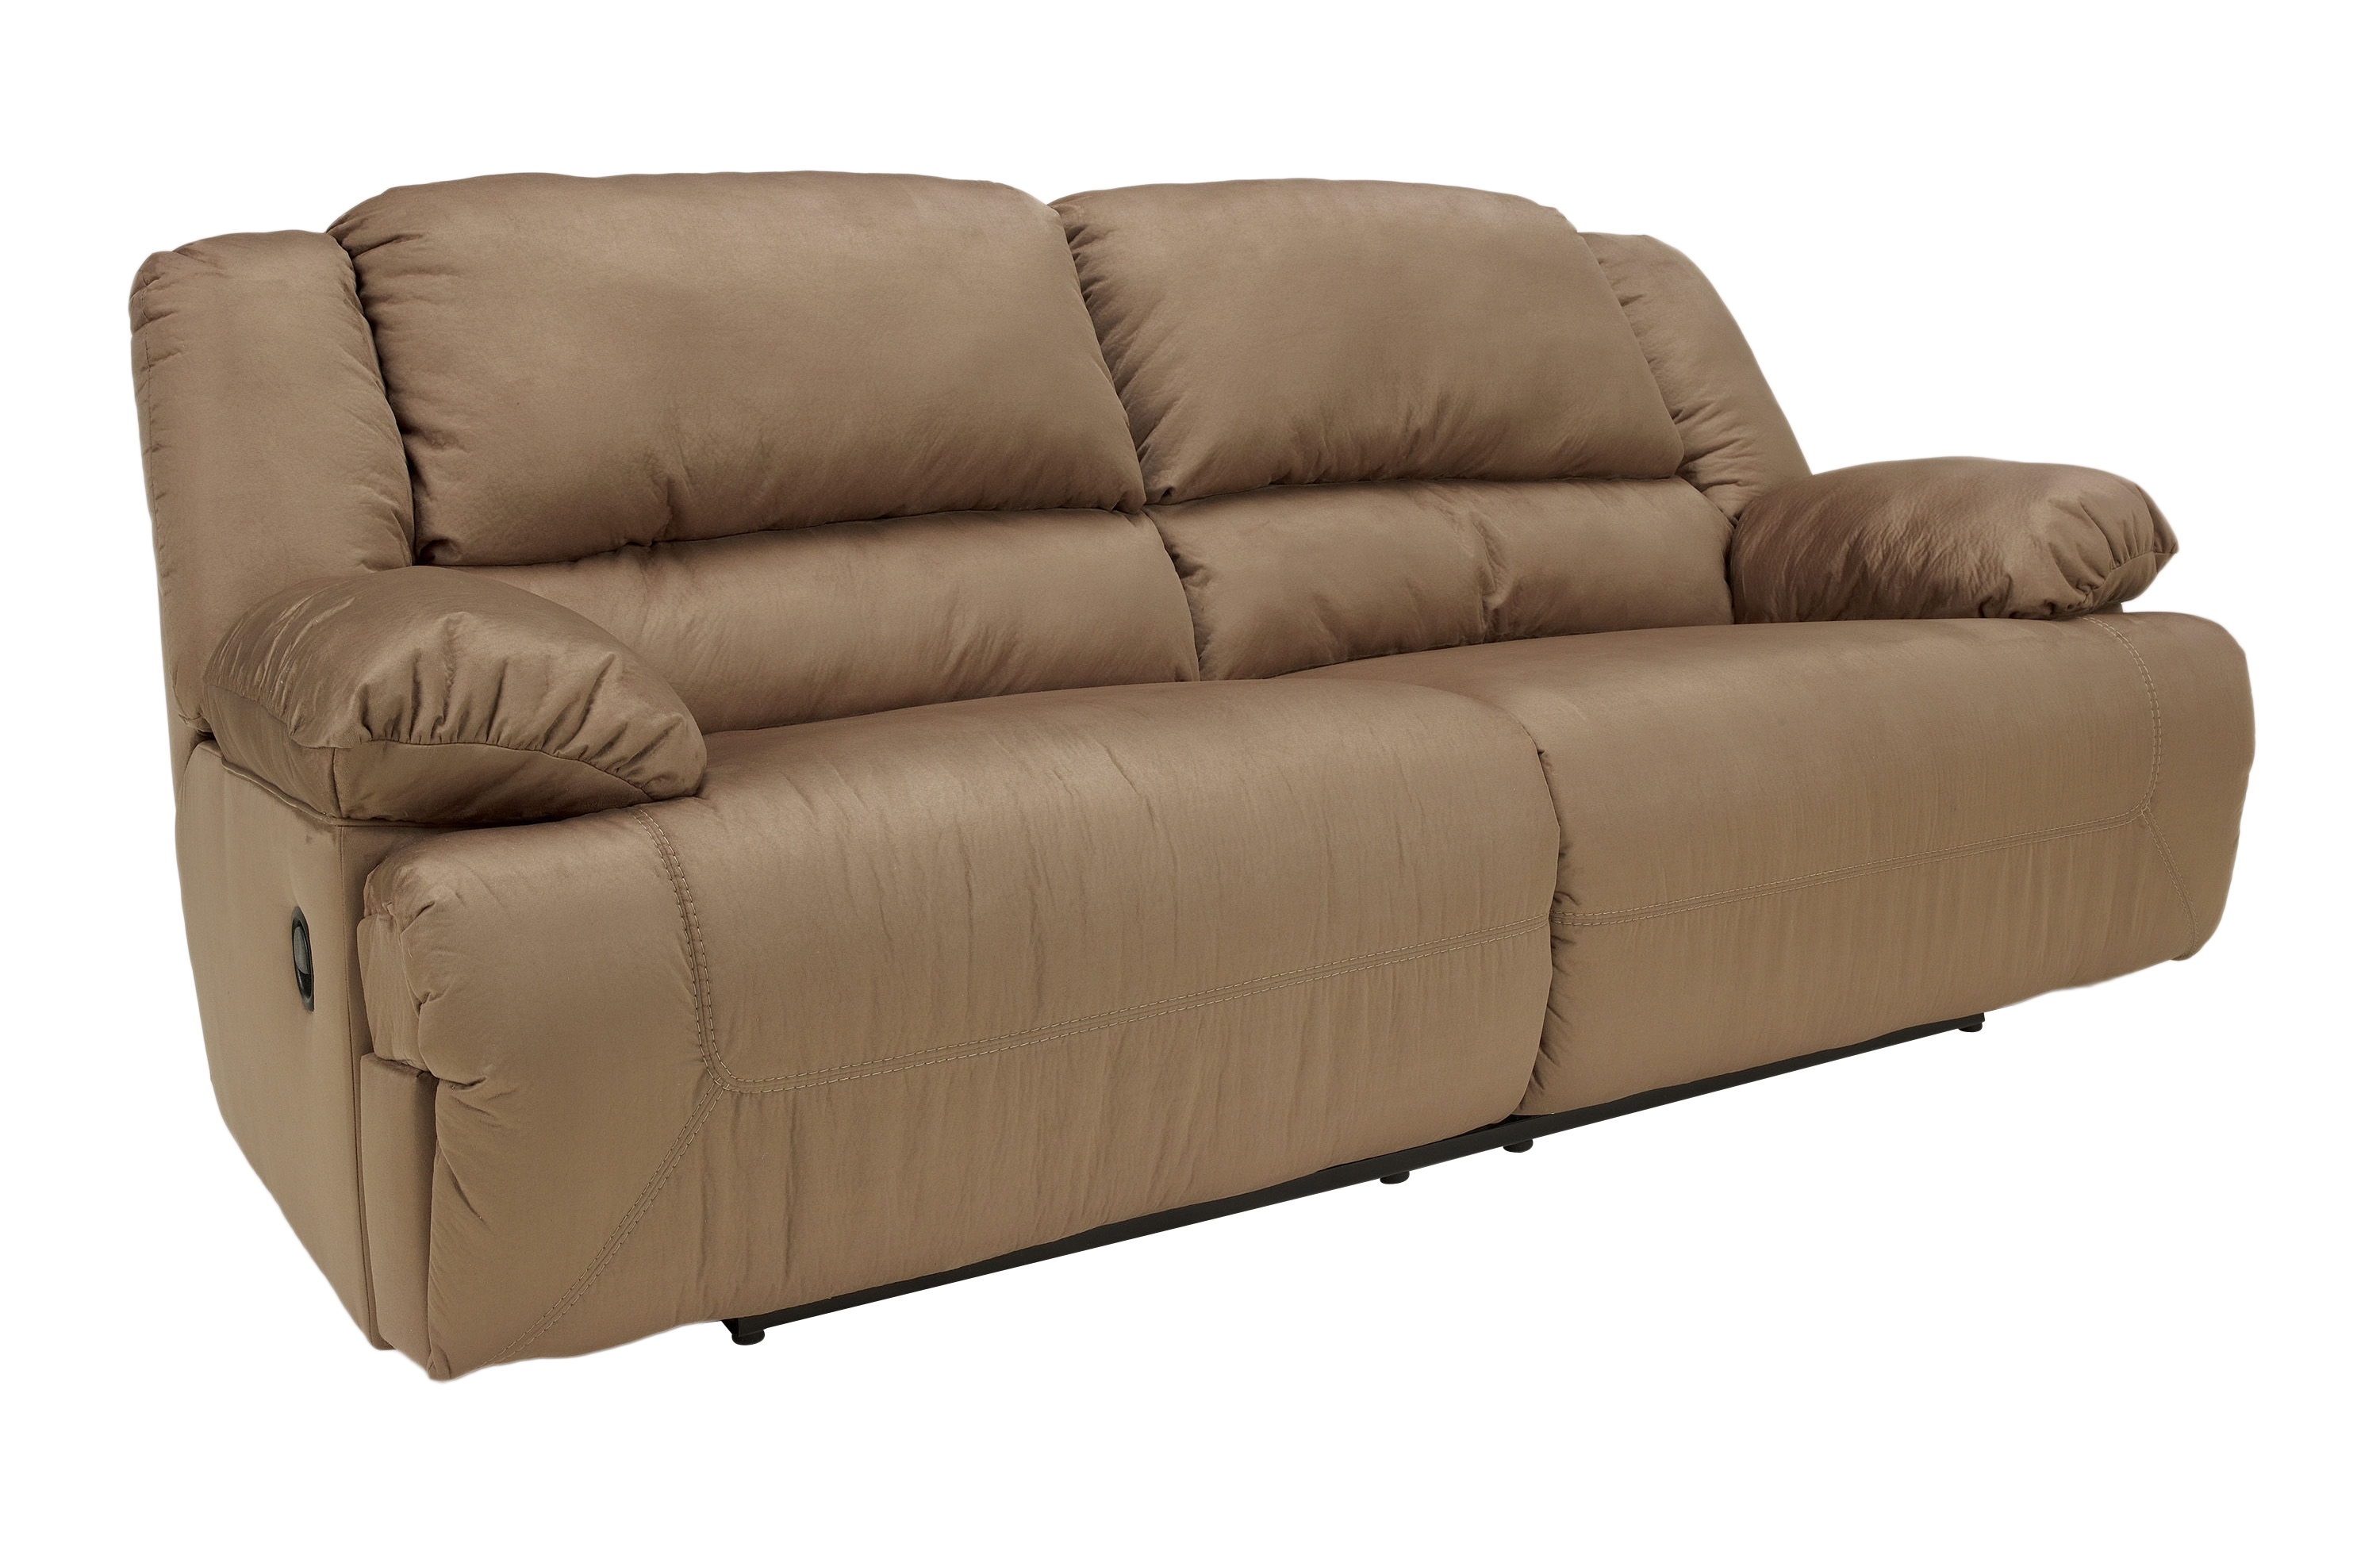 Ashley Furniture Hogan Mocha Two Seat Reclining Sofa The Classy Home